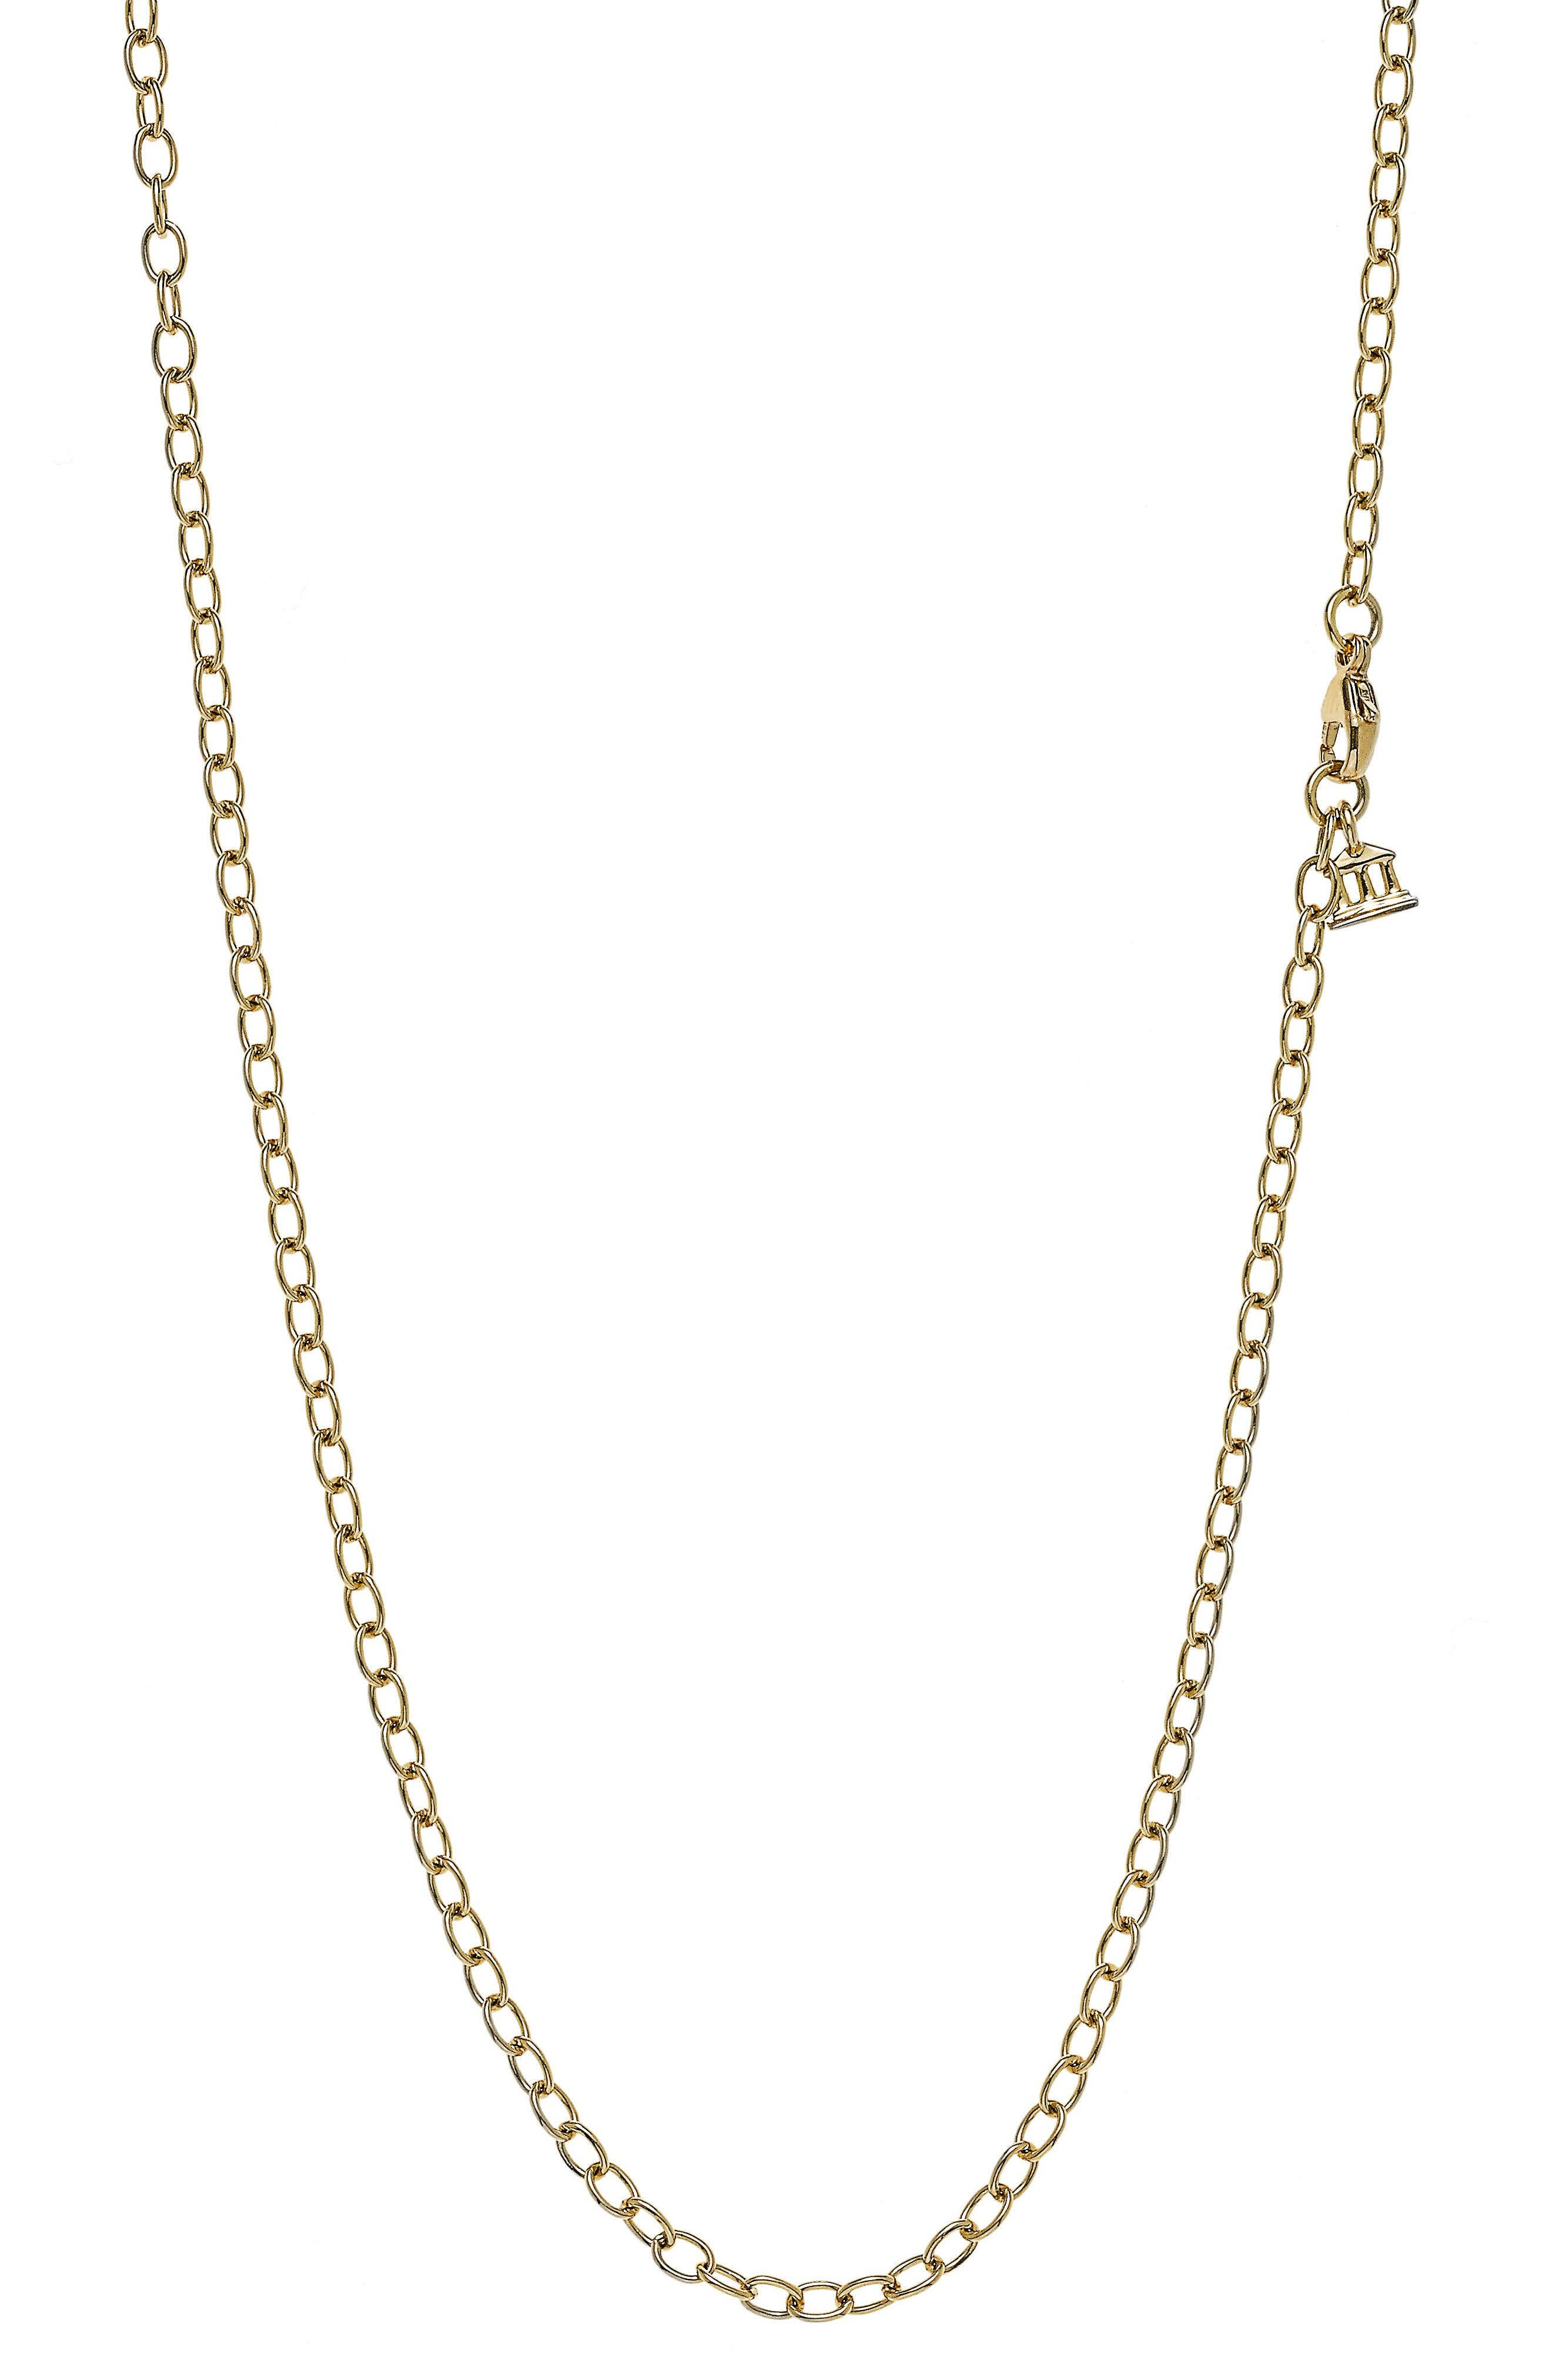 Temple St. Clair Small Chain Necklace,                         Main,                         color, Yellow Gold